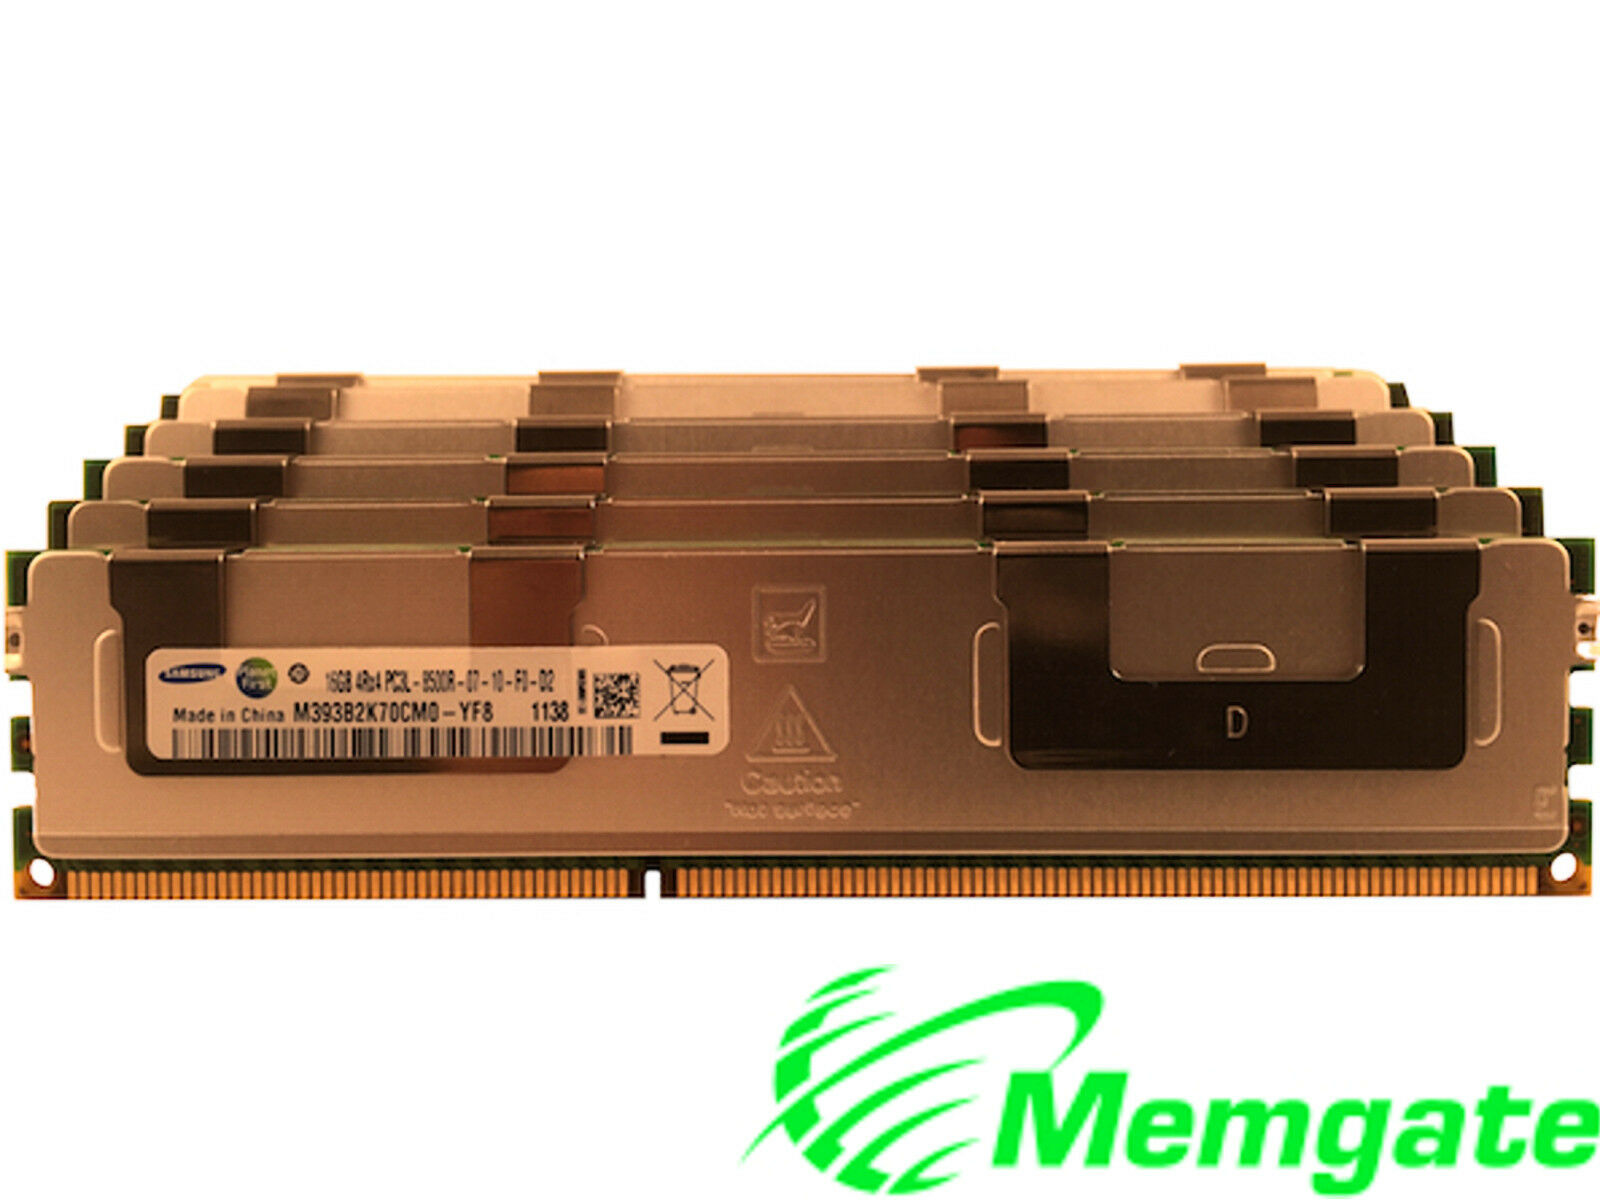 128GB (8x16GB) Memory For Dell PowerEdge R715 R720 R720XD R810 R815 R820 R910. Buy it now for 215.70